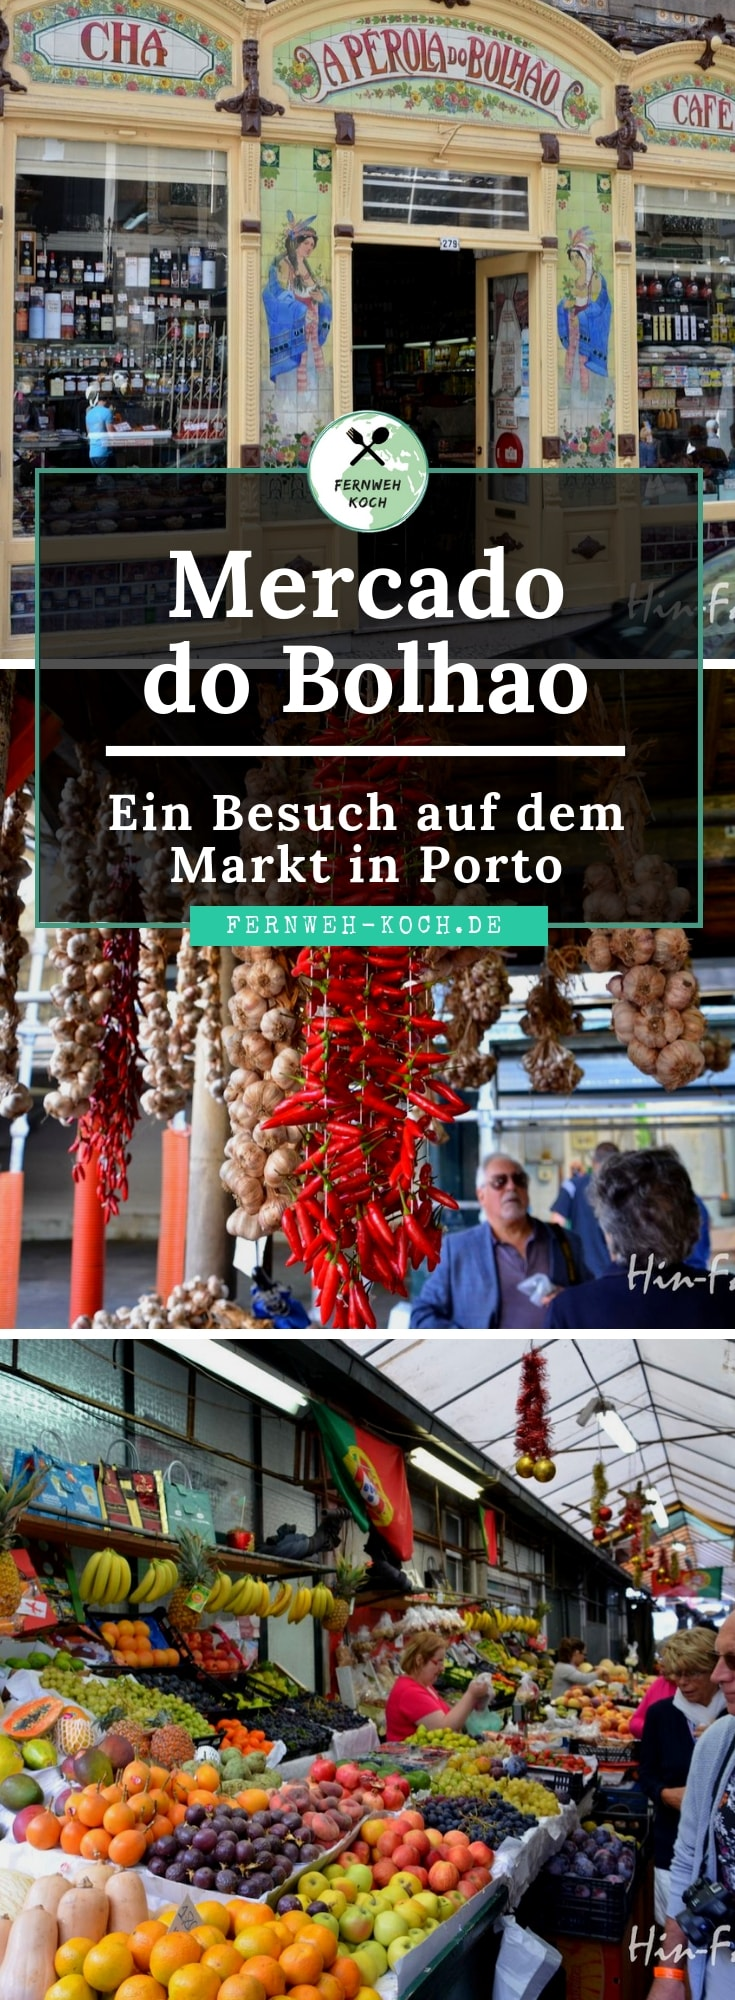 Mercado do Bolhao in Porto